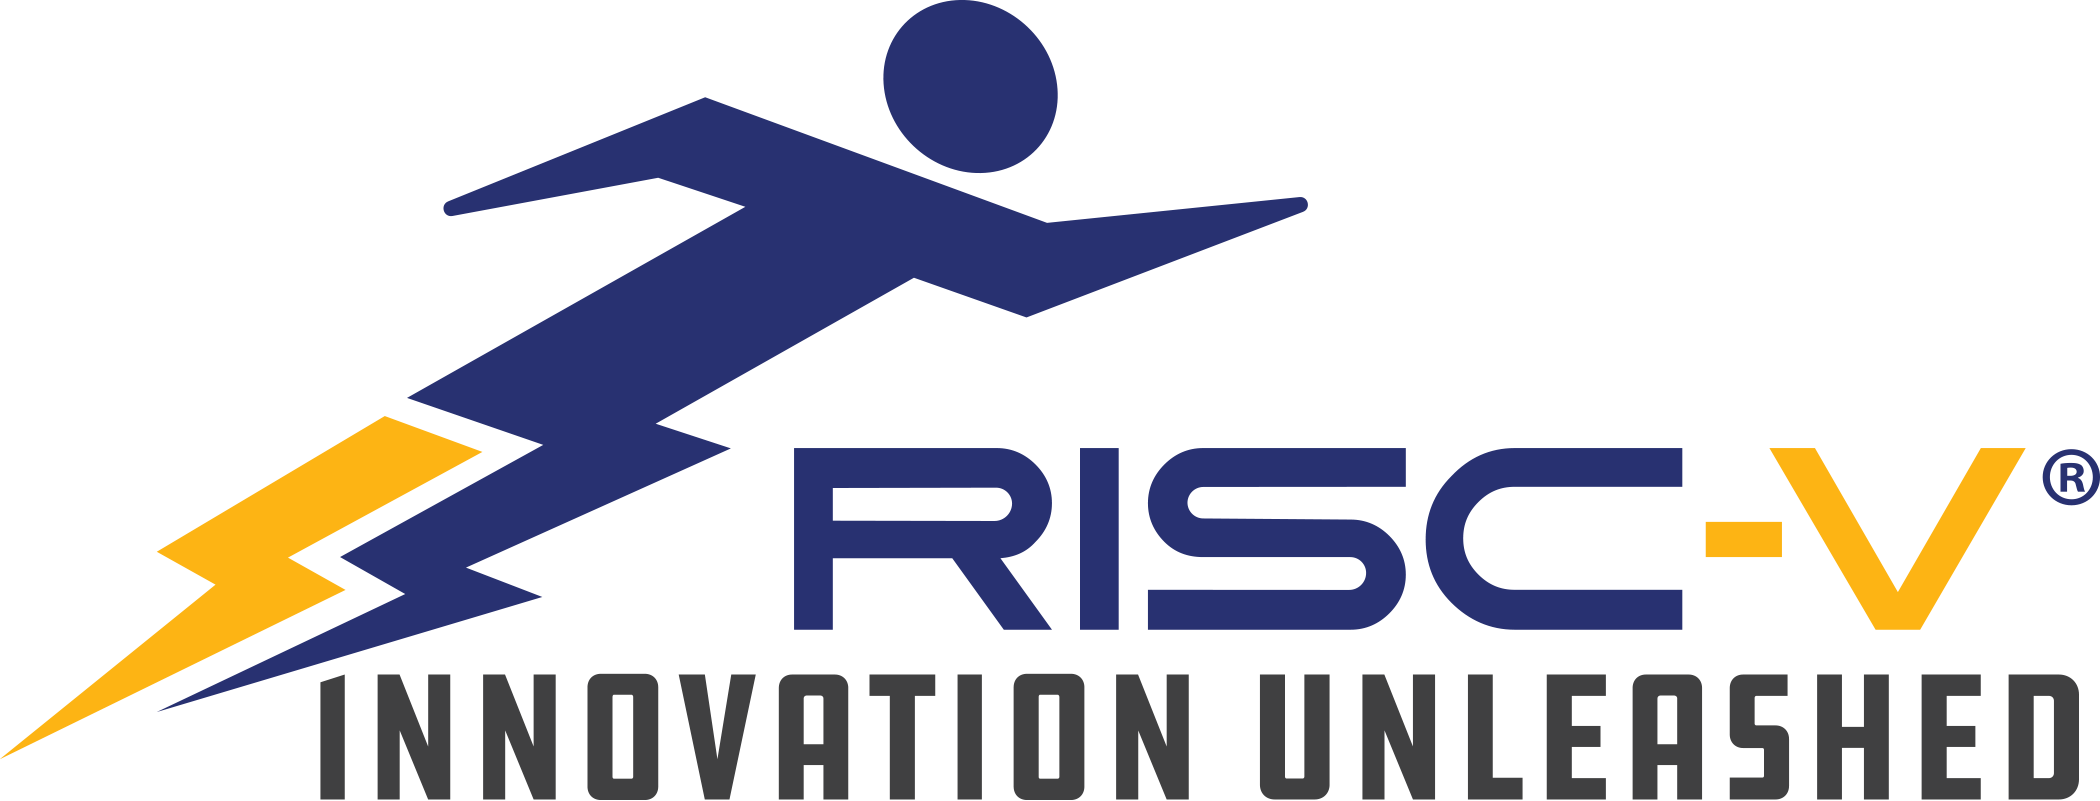 RISC-V Innovation Unleashed